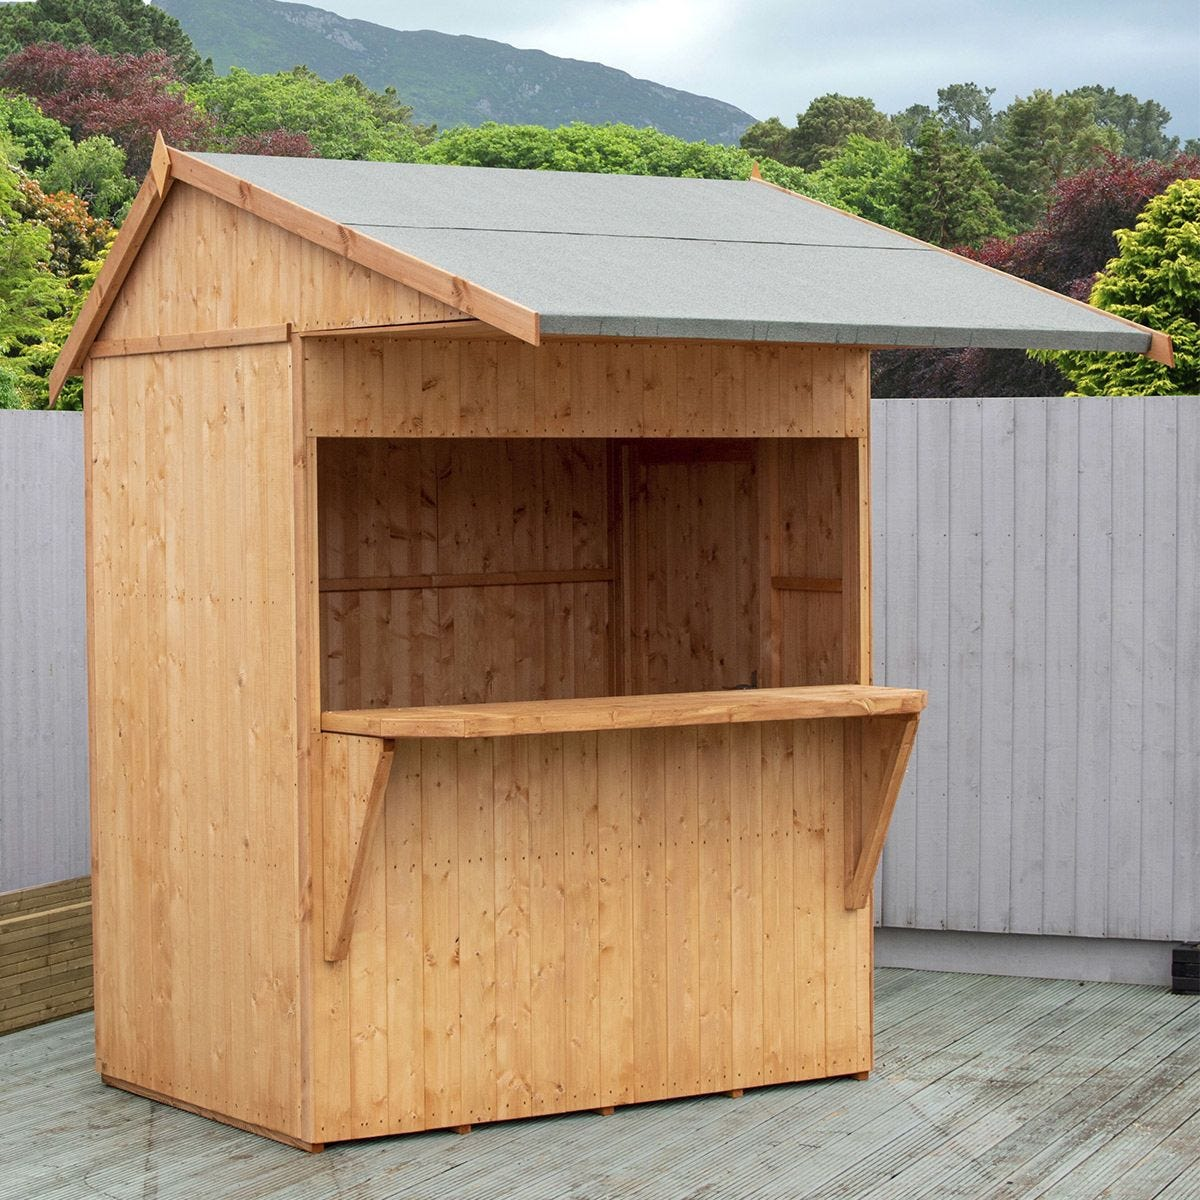 Shire Wooden Shed and Bar Area